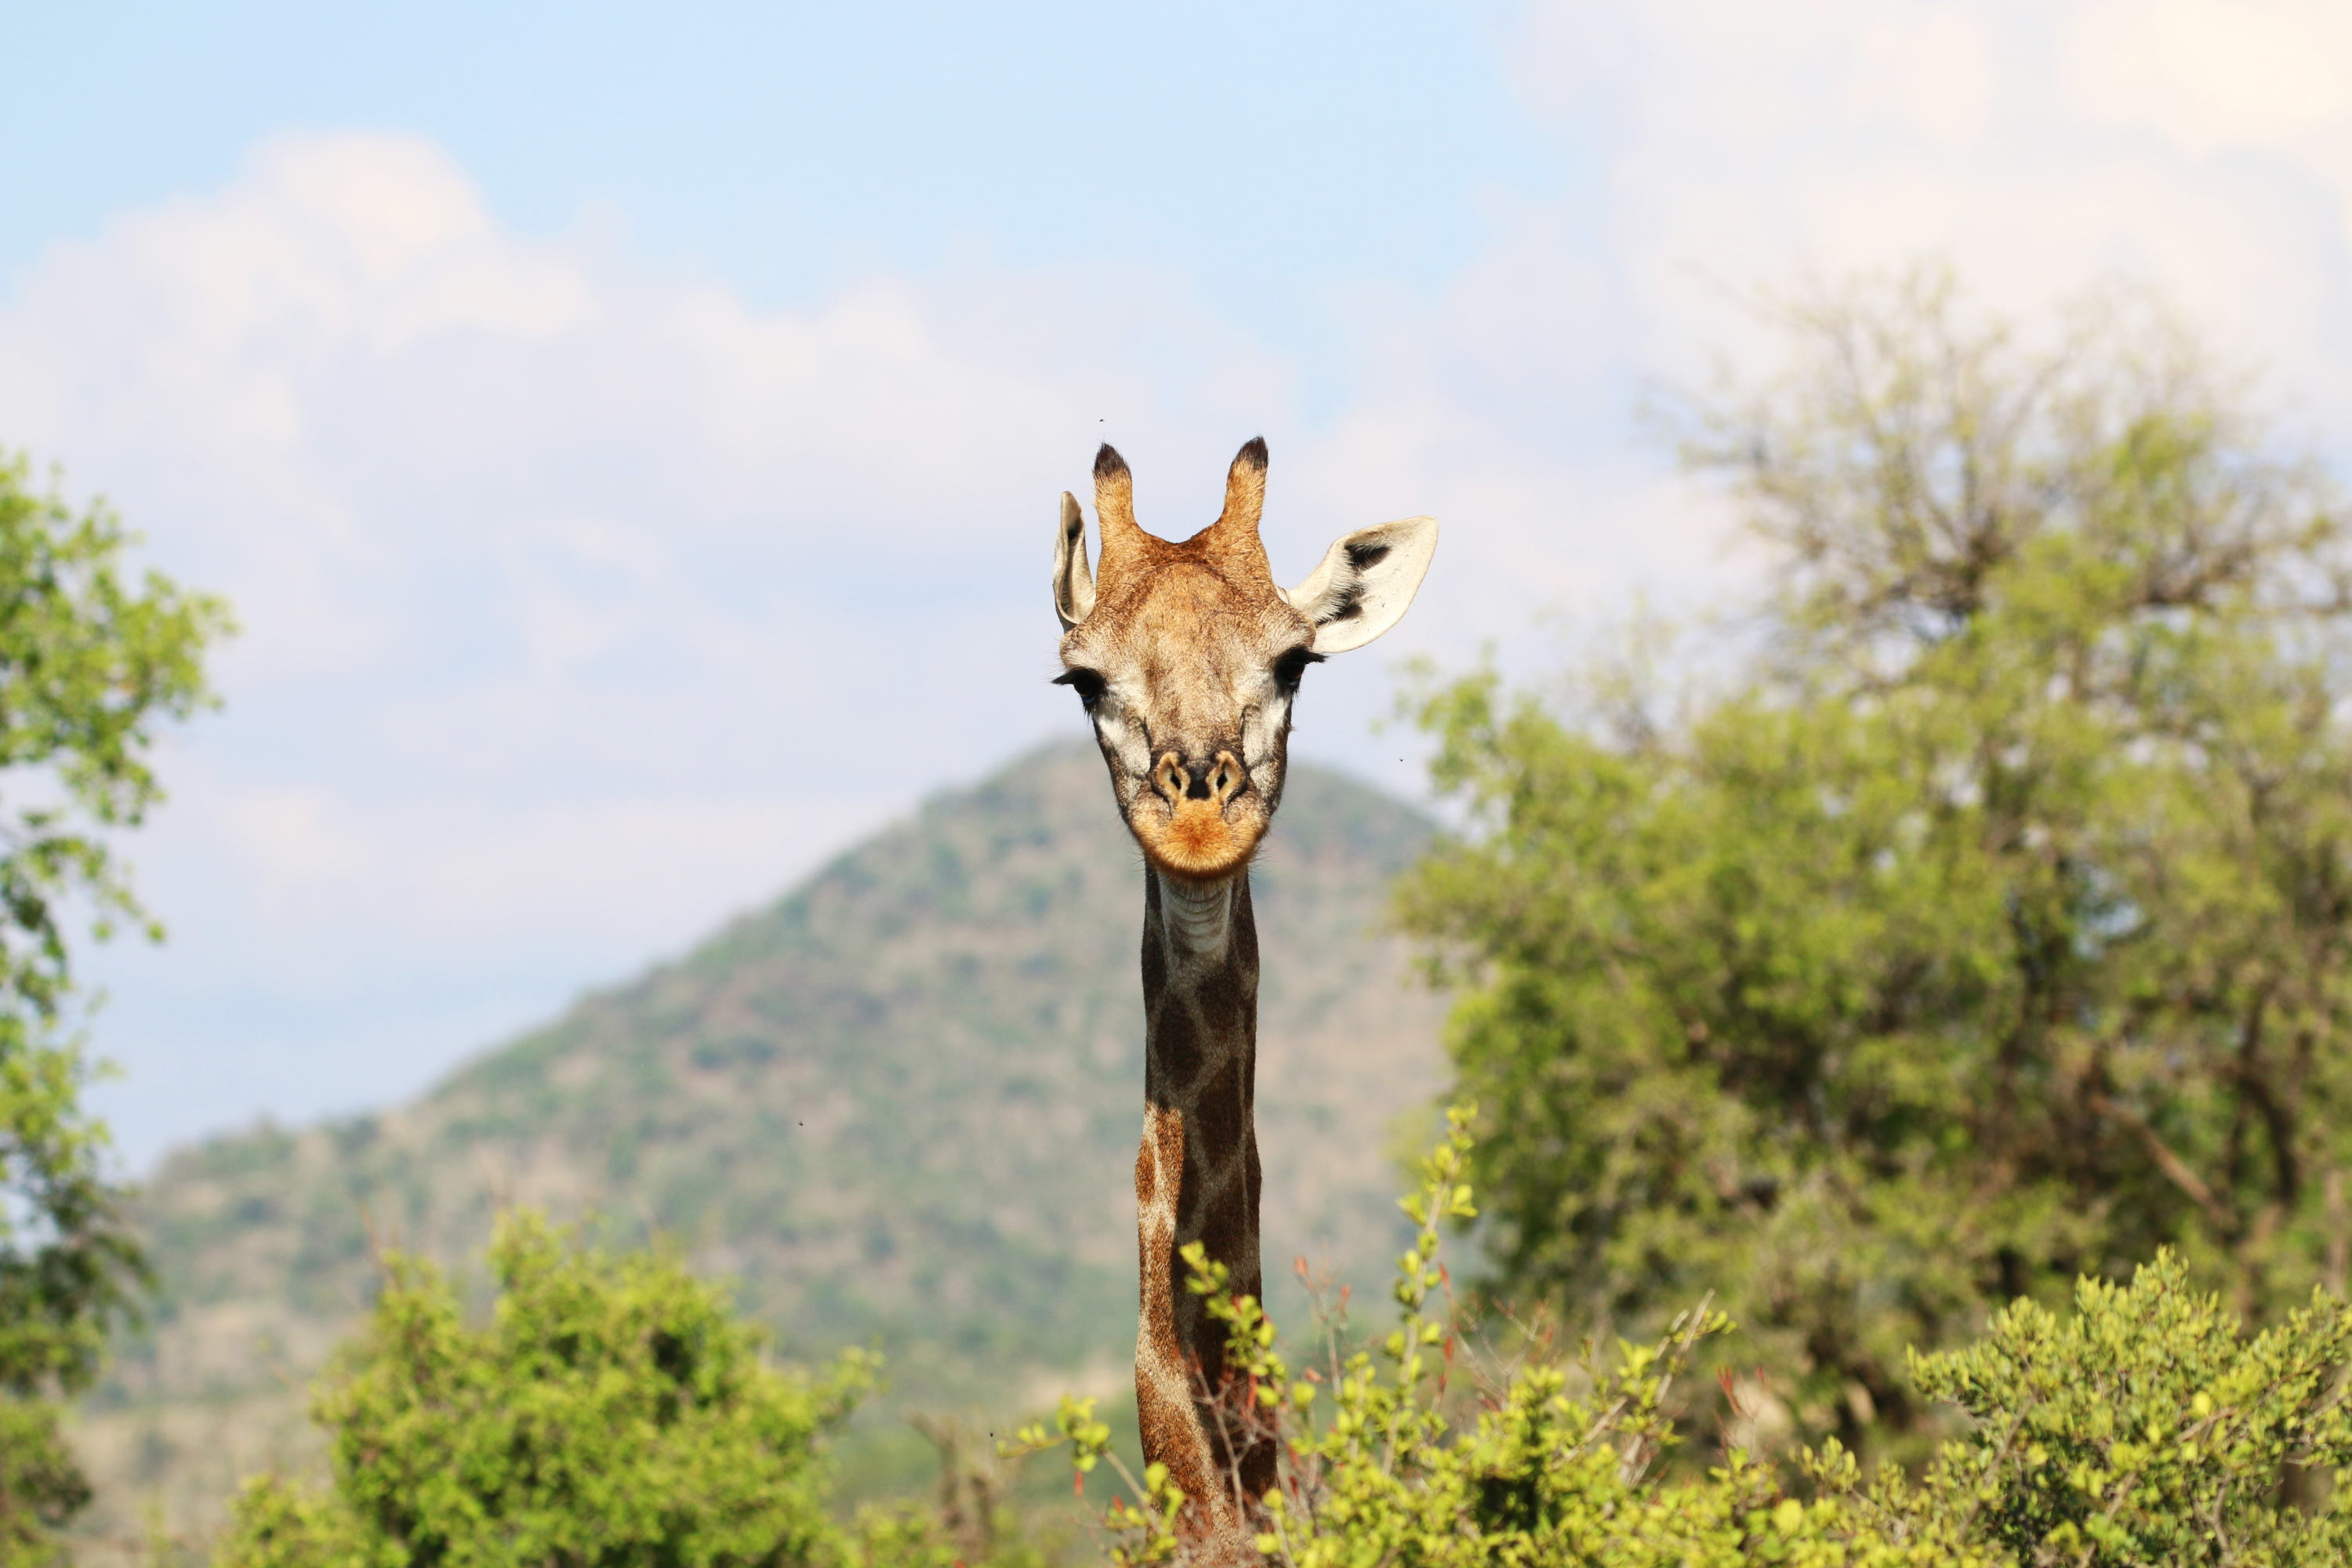 Giraffe (Photo by Stephen Chan)